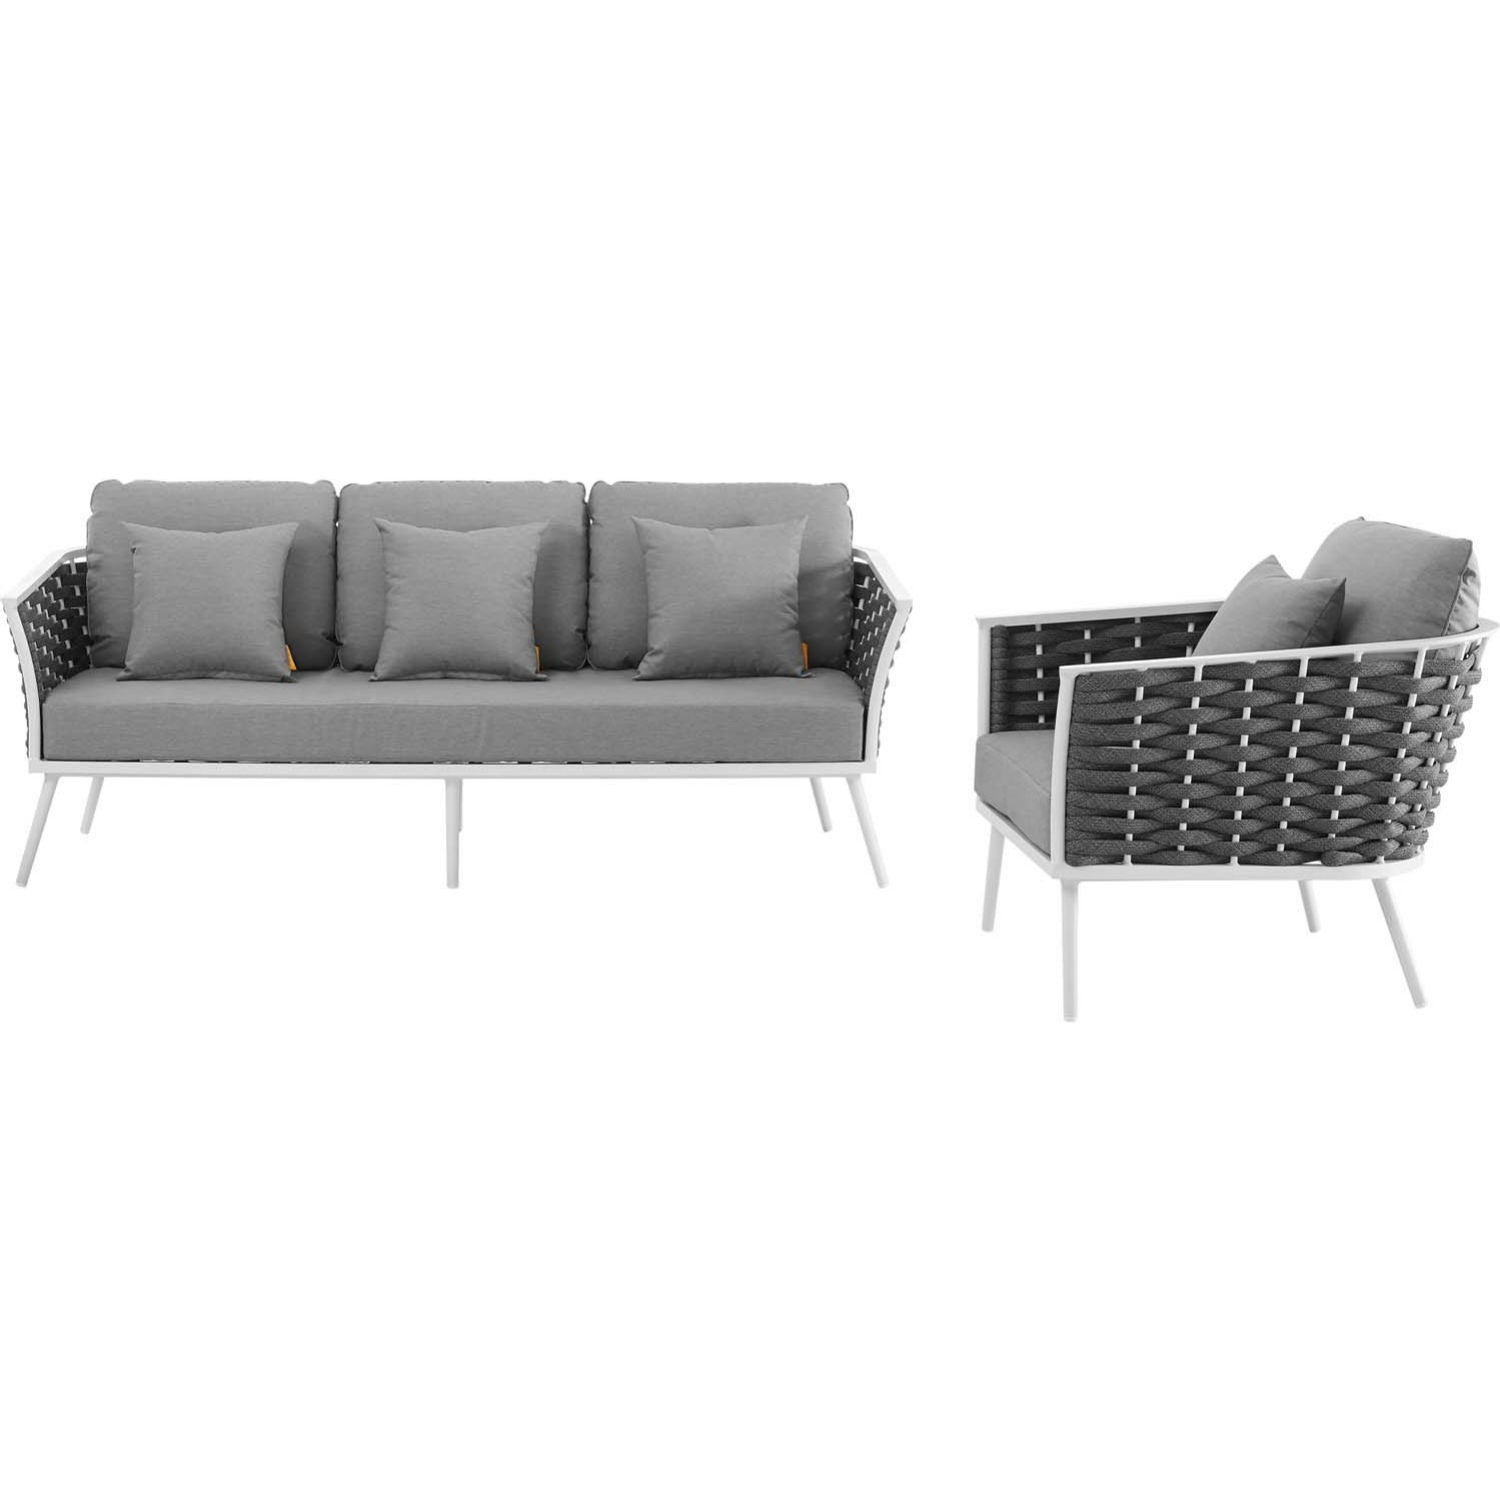 2-Piece Outdoor Sectional In Gray Foam Padding - image-2